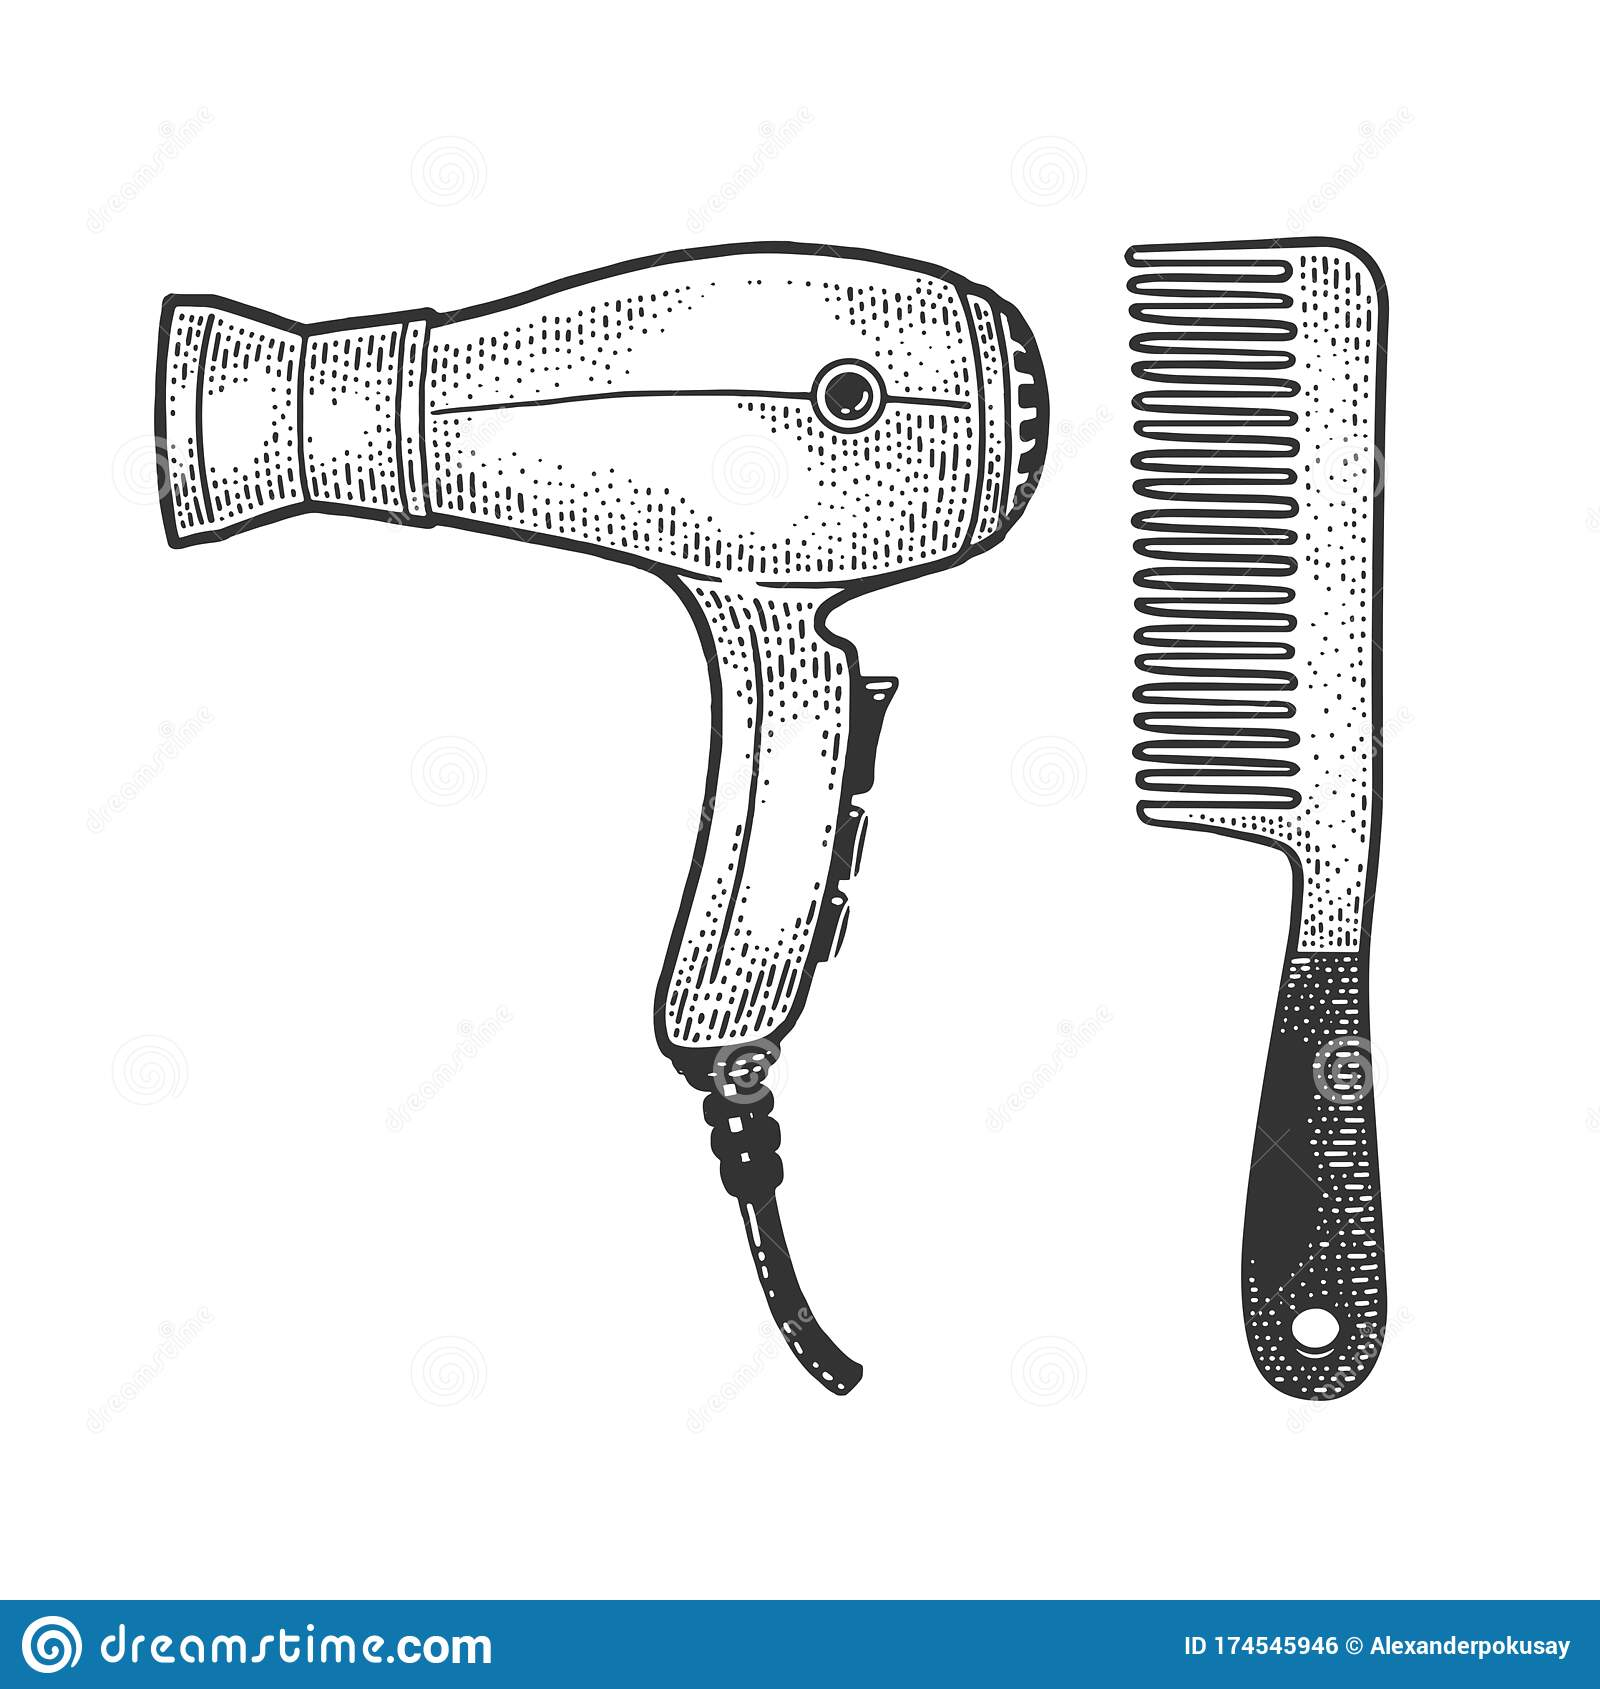 Hair Dryer And Comb Sketch Vector Illustration Stock Vector Illustration Of Sketch Drawing 174545946